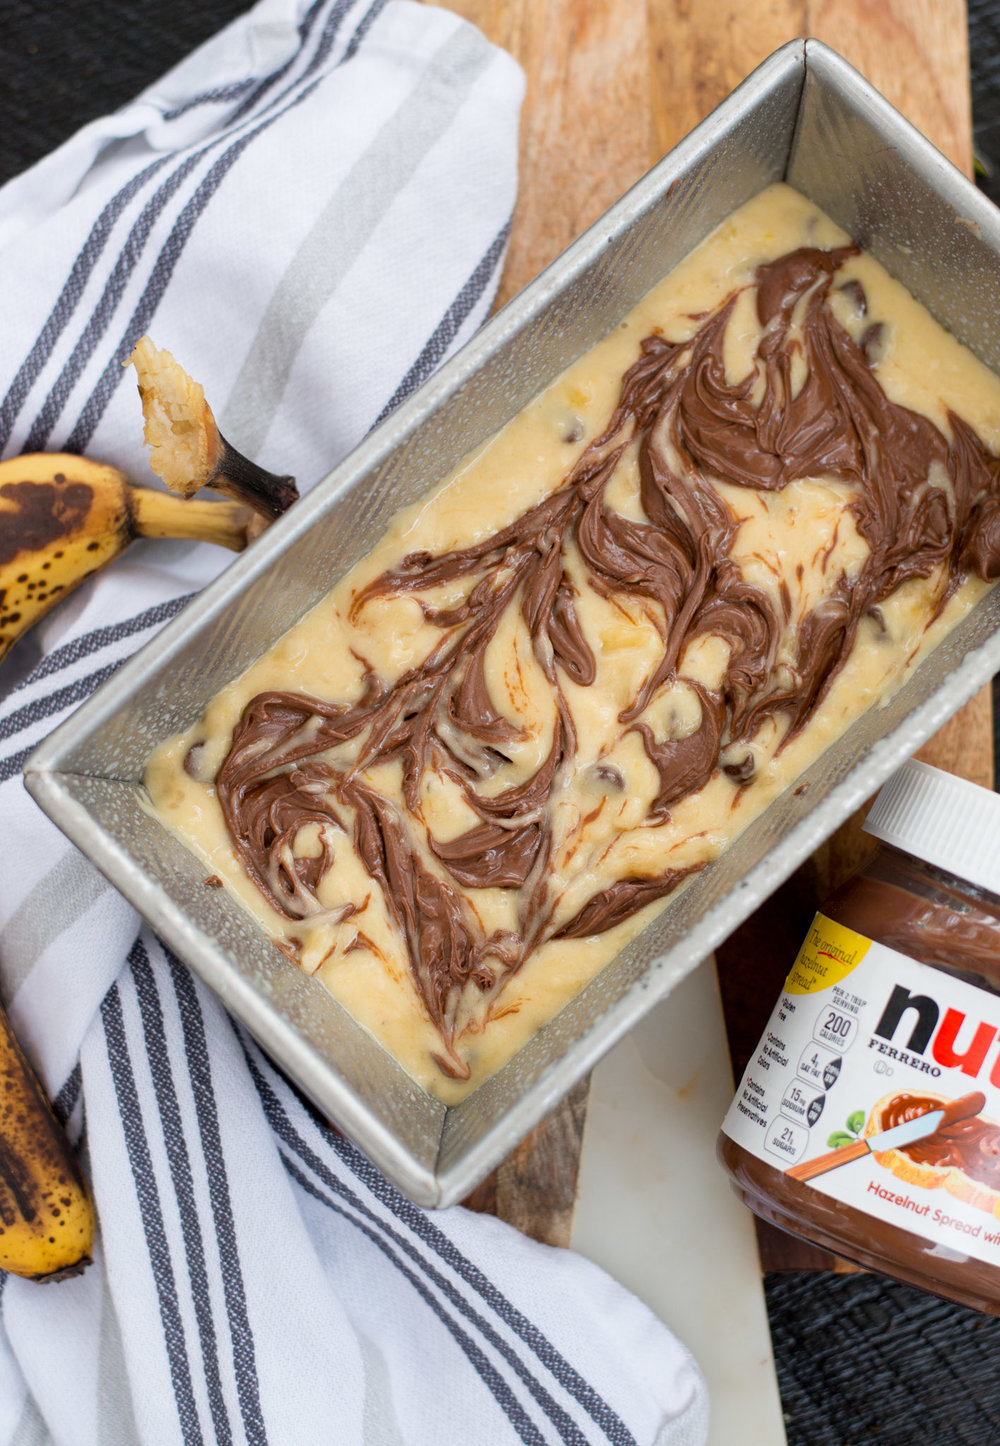 Mixed & Measured | Chocolate Chip Banana Nutella Bread